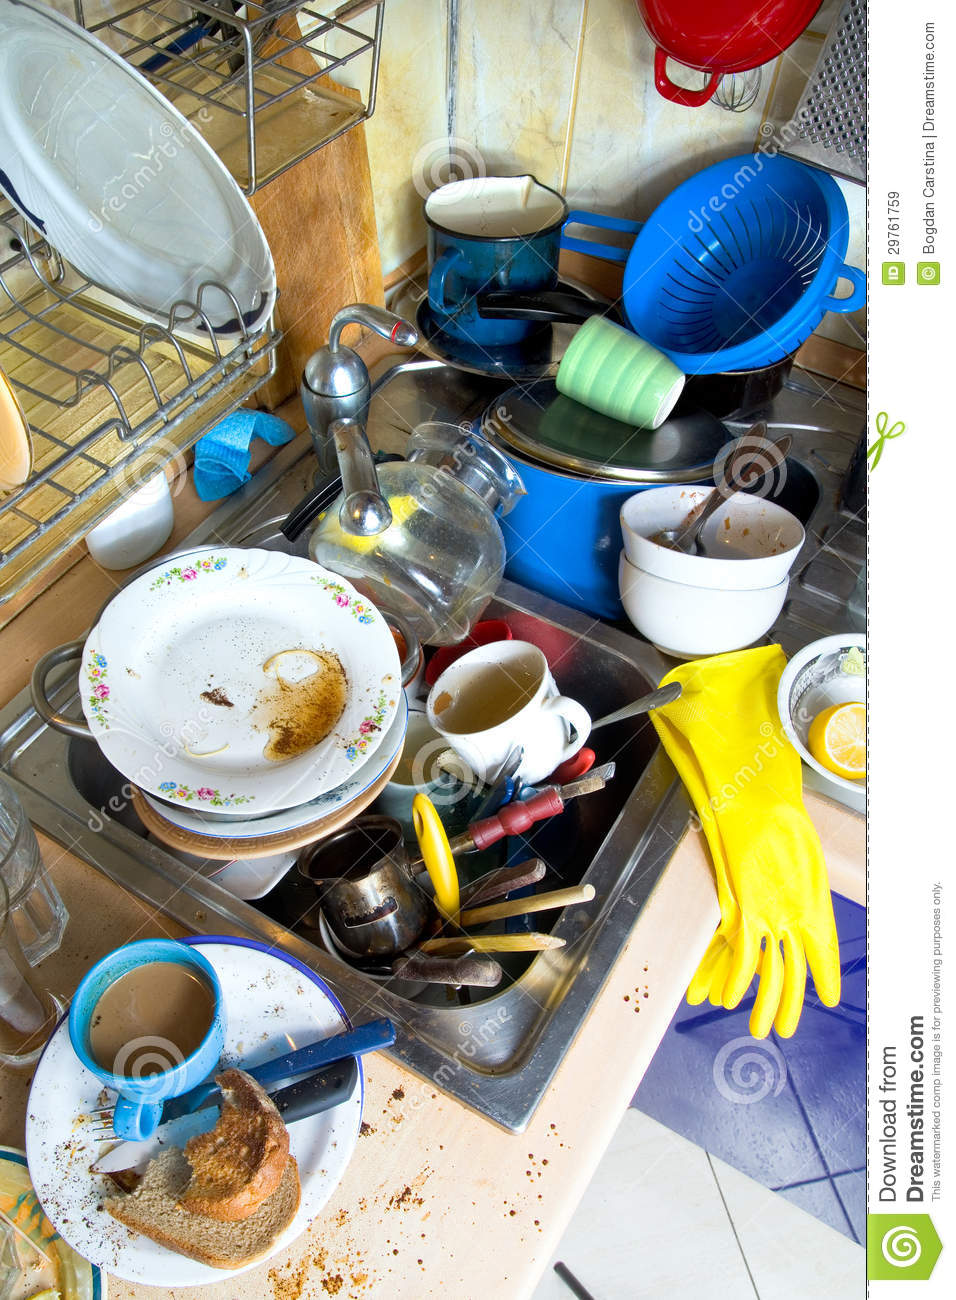 dirty kitchen unwashed dishes stock image - image of